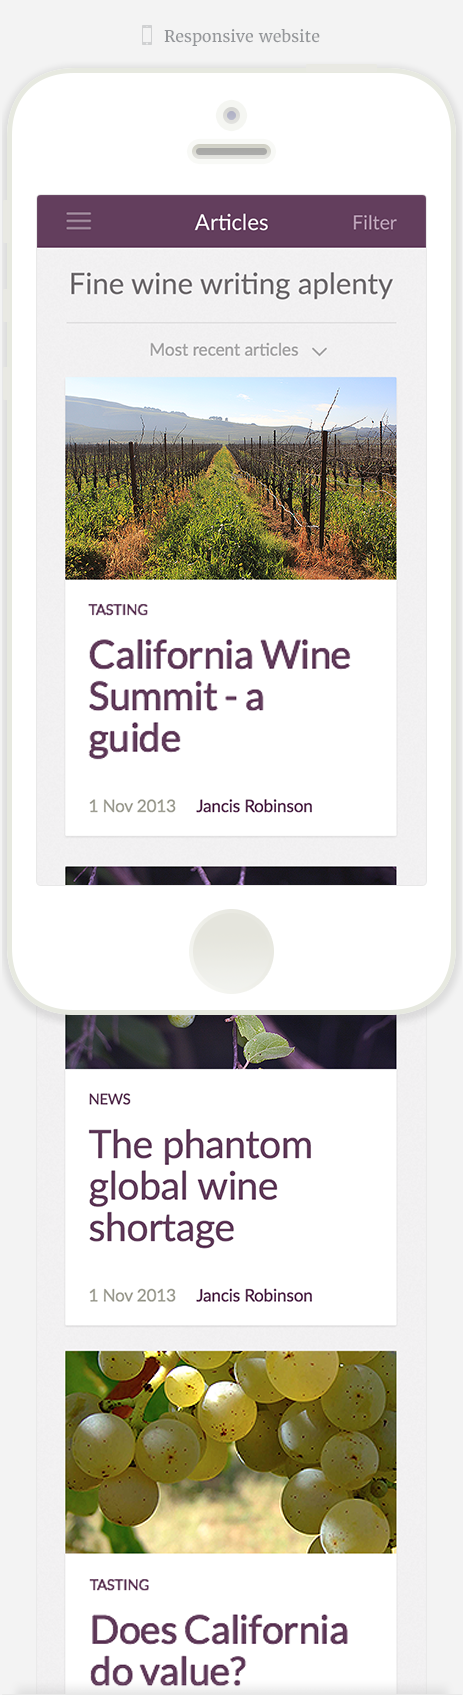 Jancis Robinson responsive website 1